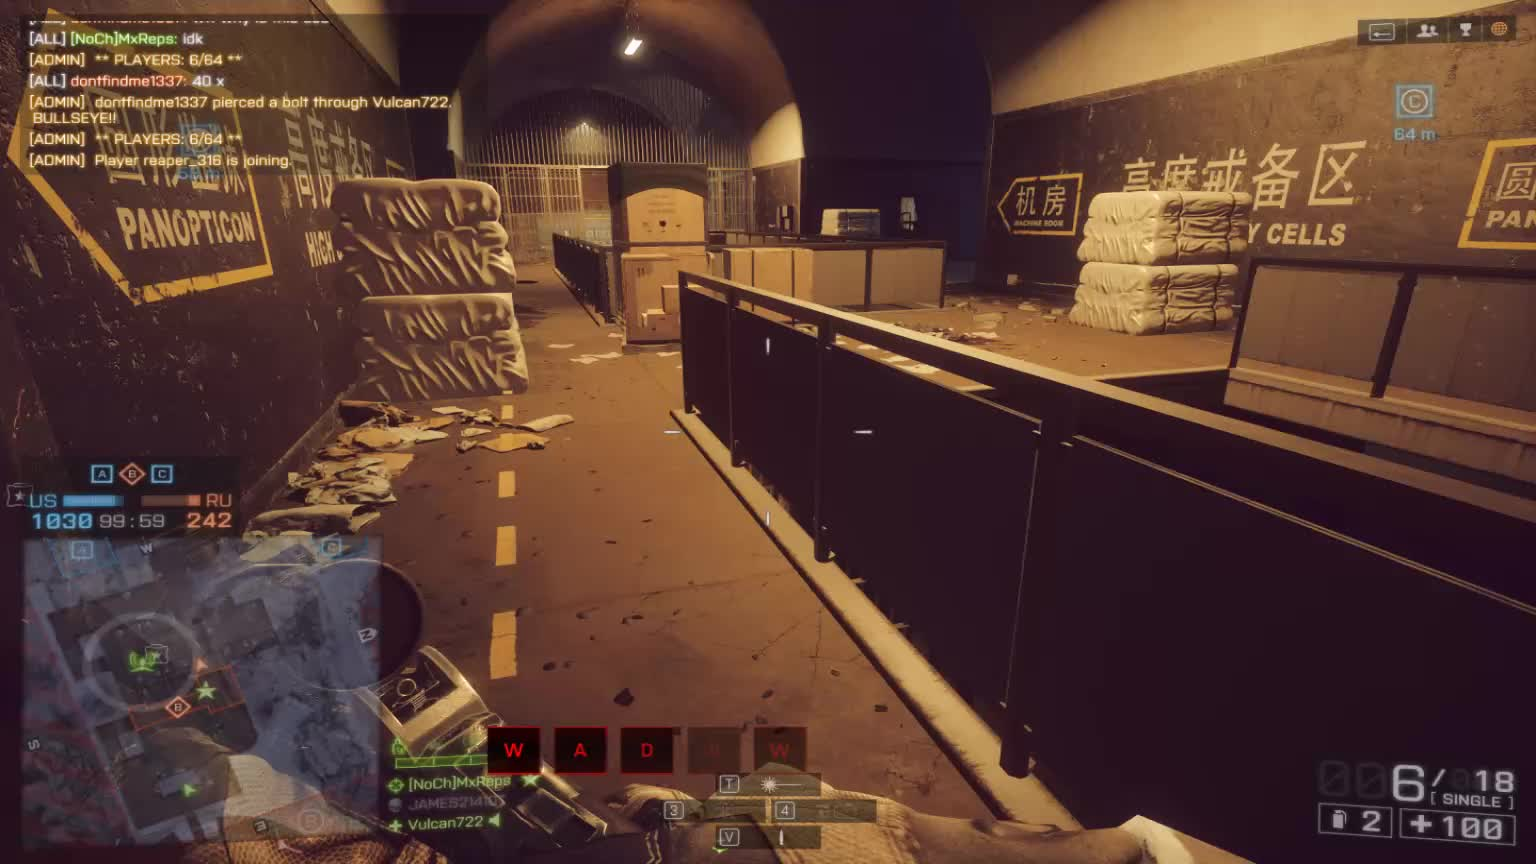 battlefield 4, bf4, canted iron, lockers, mxreps, no scope, 7 KillPerMinute sniping in lockers (3v3) GIFs